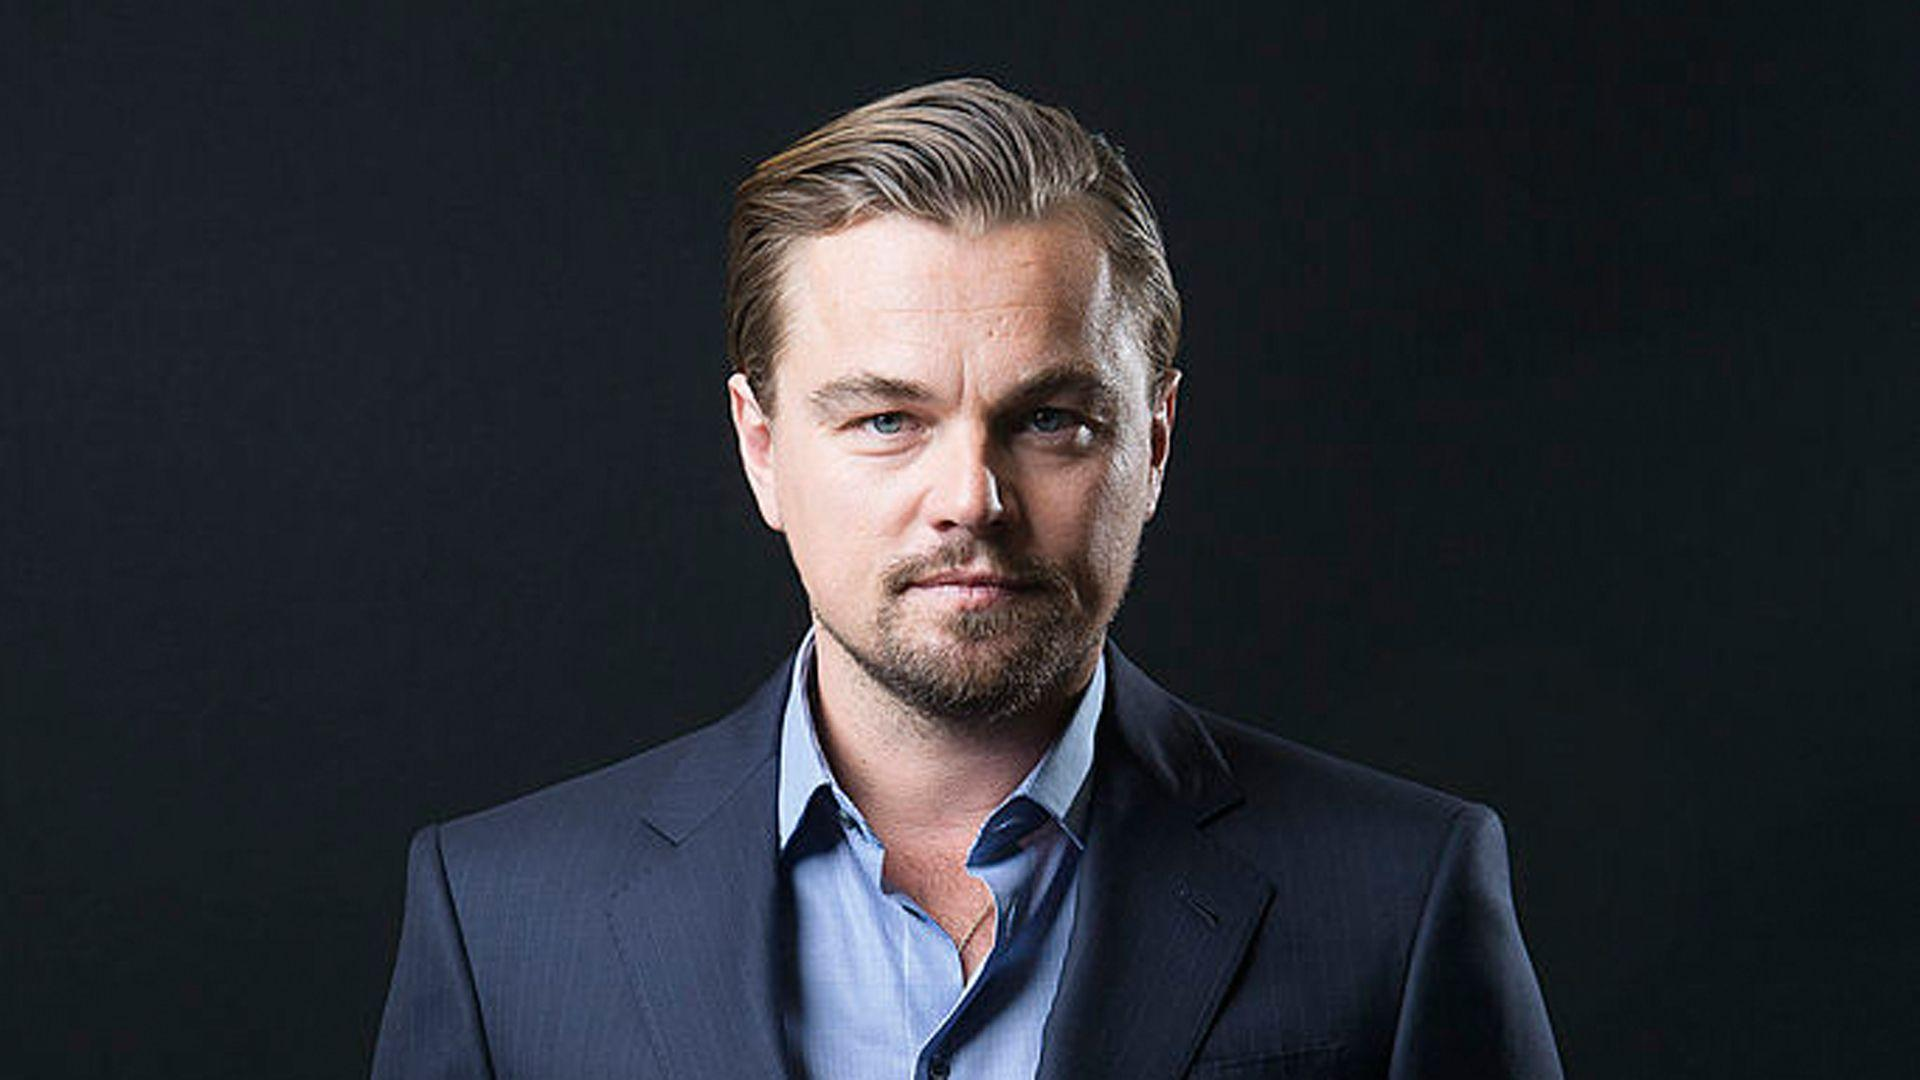 HD Leonardo Dicaprio Wallpapers – HdCoolWallpapers.Com